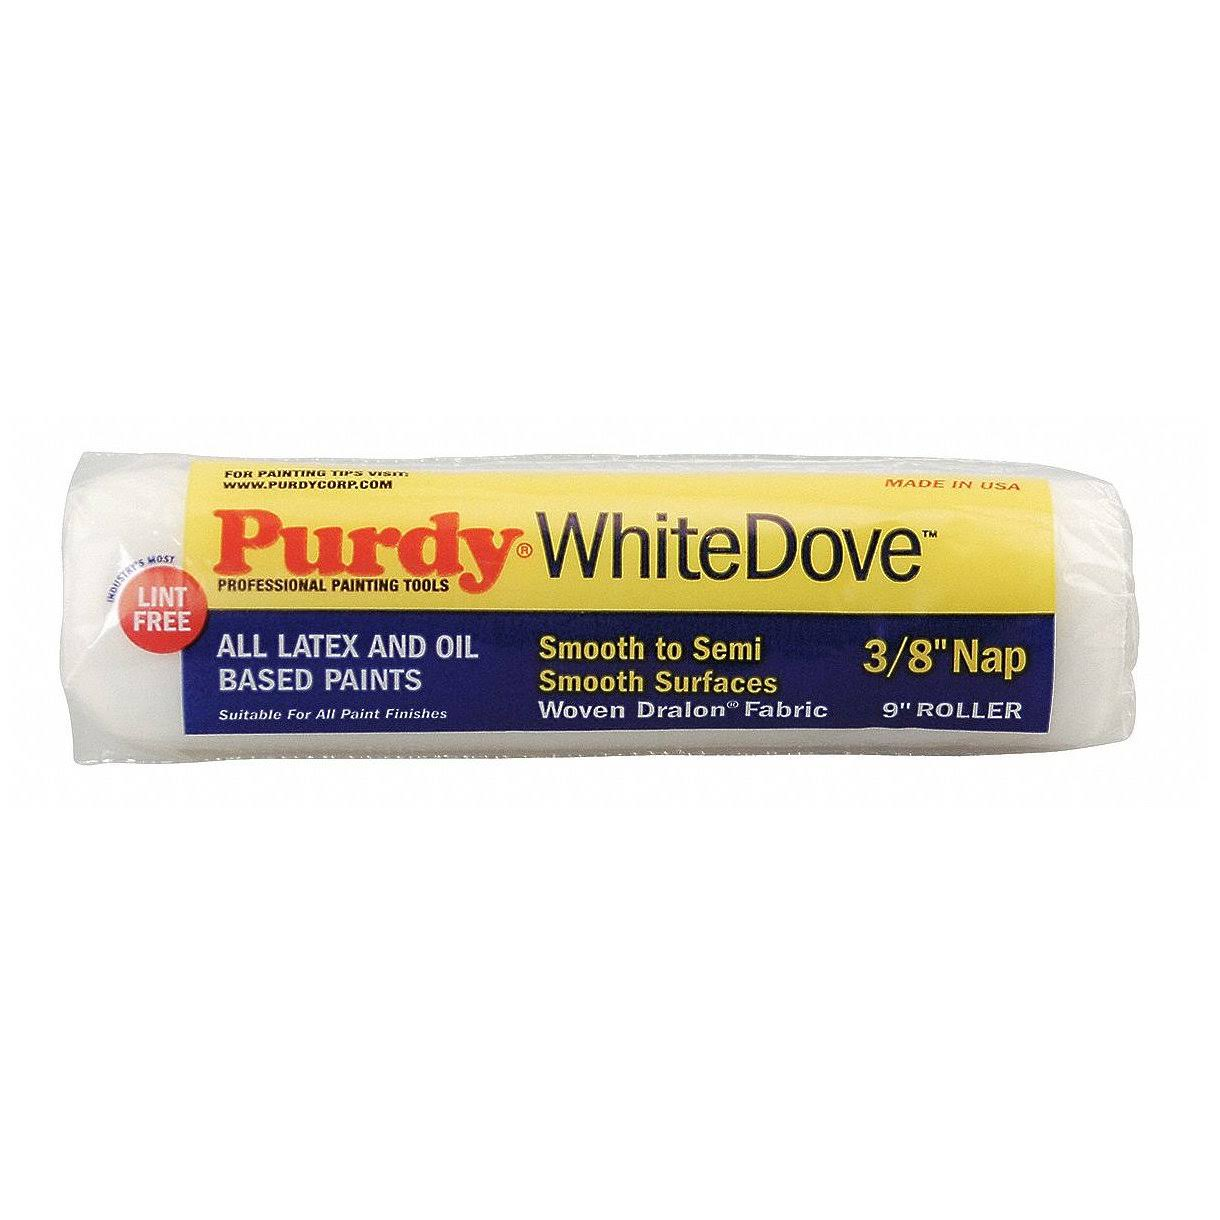 "Purdy White Dove Fabric Roller Cover - 9""x3/8"""